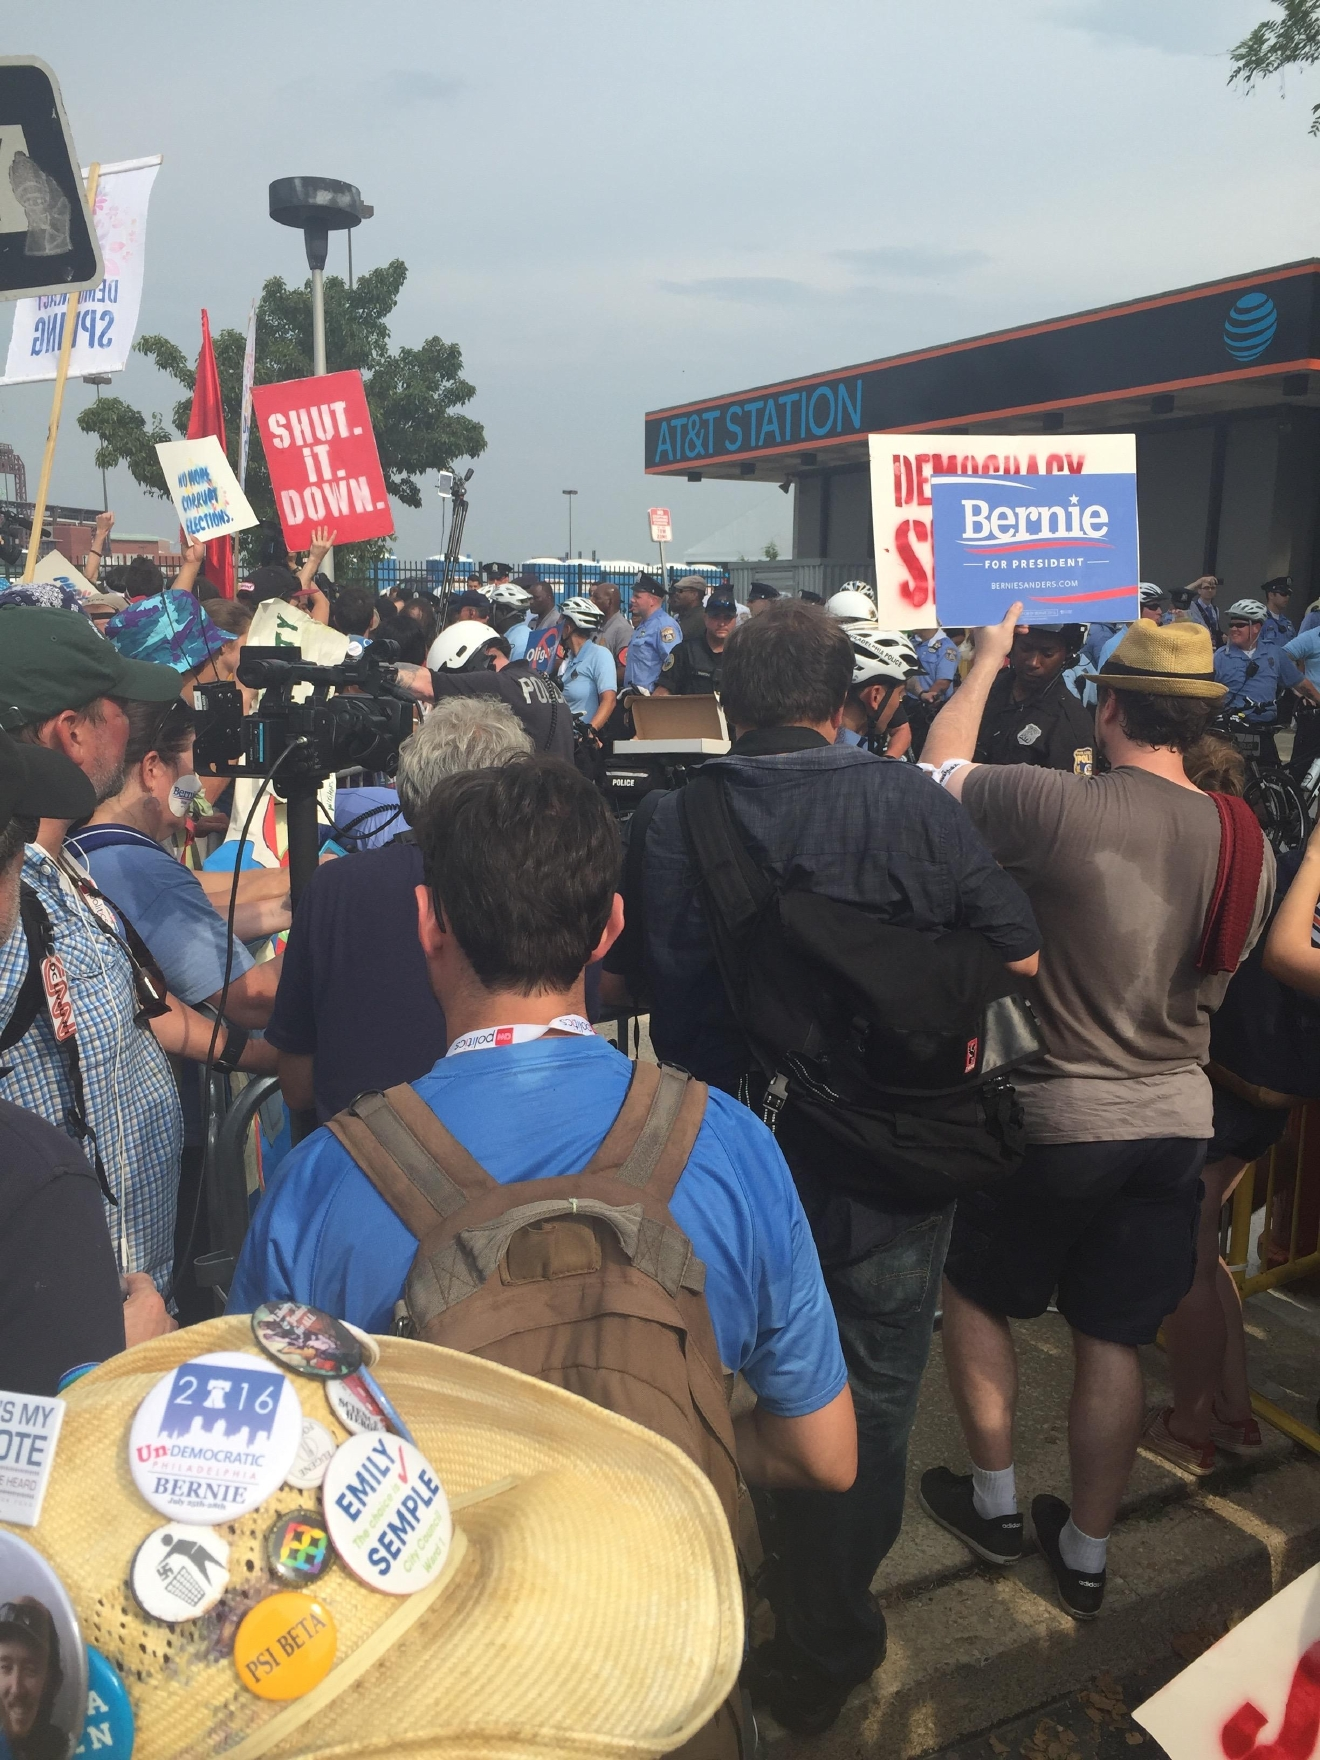 Sanders supporters gather outside of the Democratic National Convention. (Amanda Ota, Sinclair Broadcast Group)